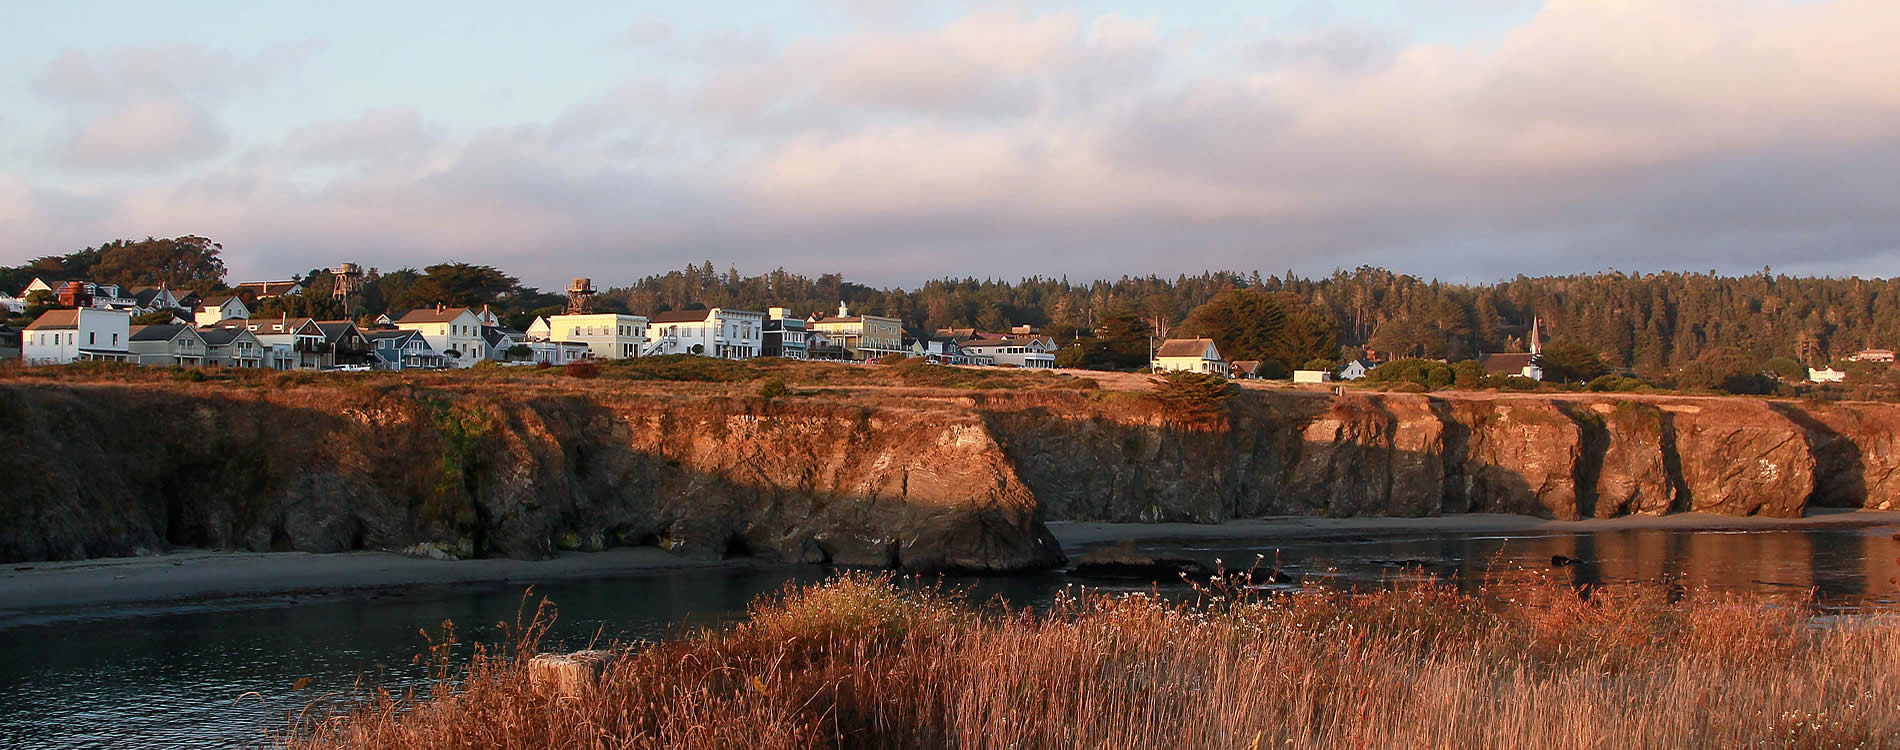 mendocino california